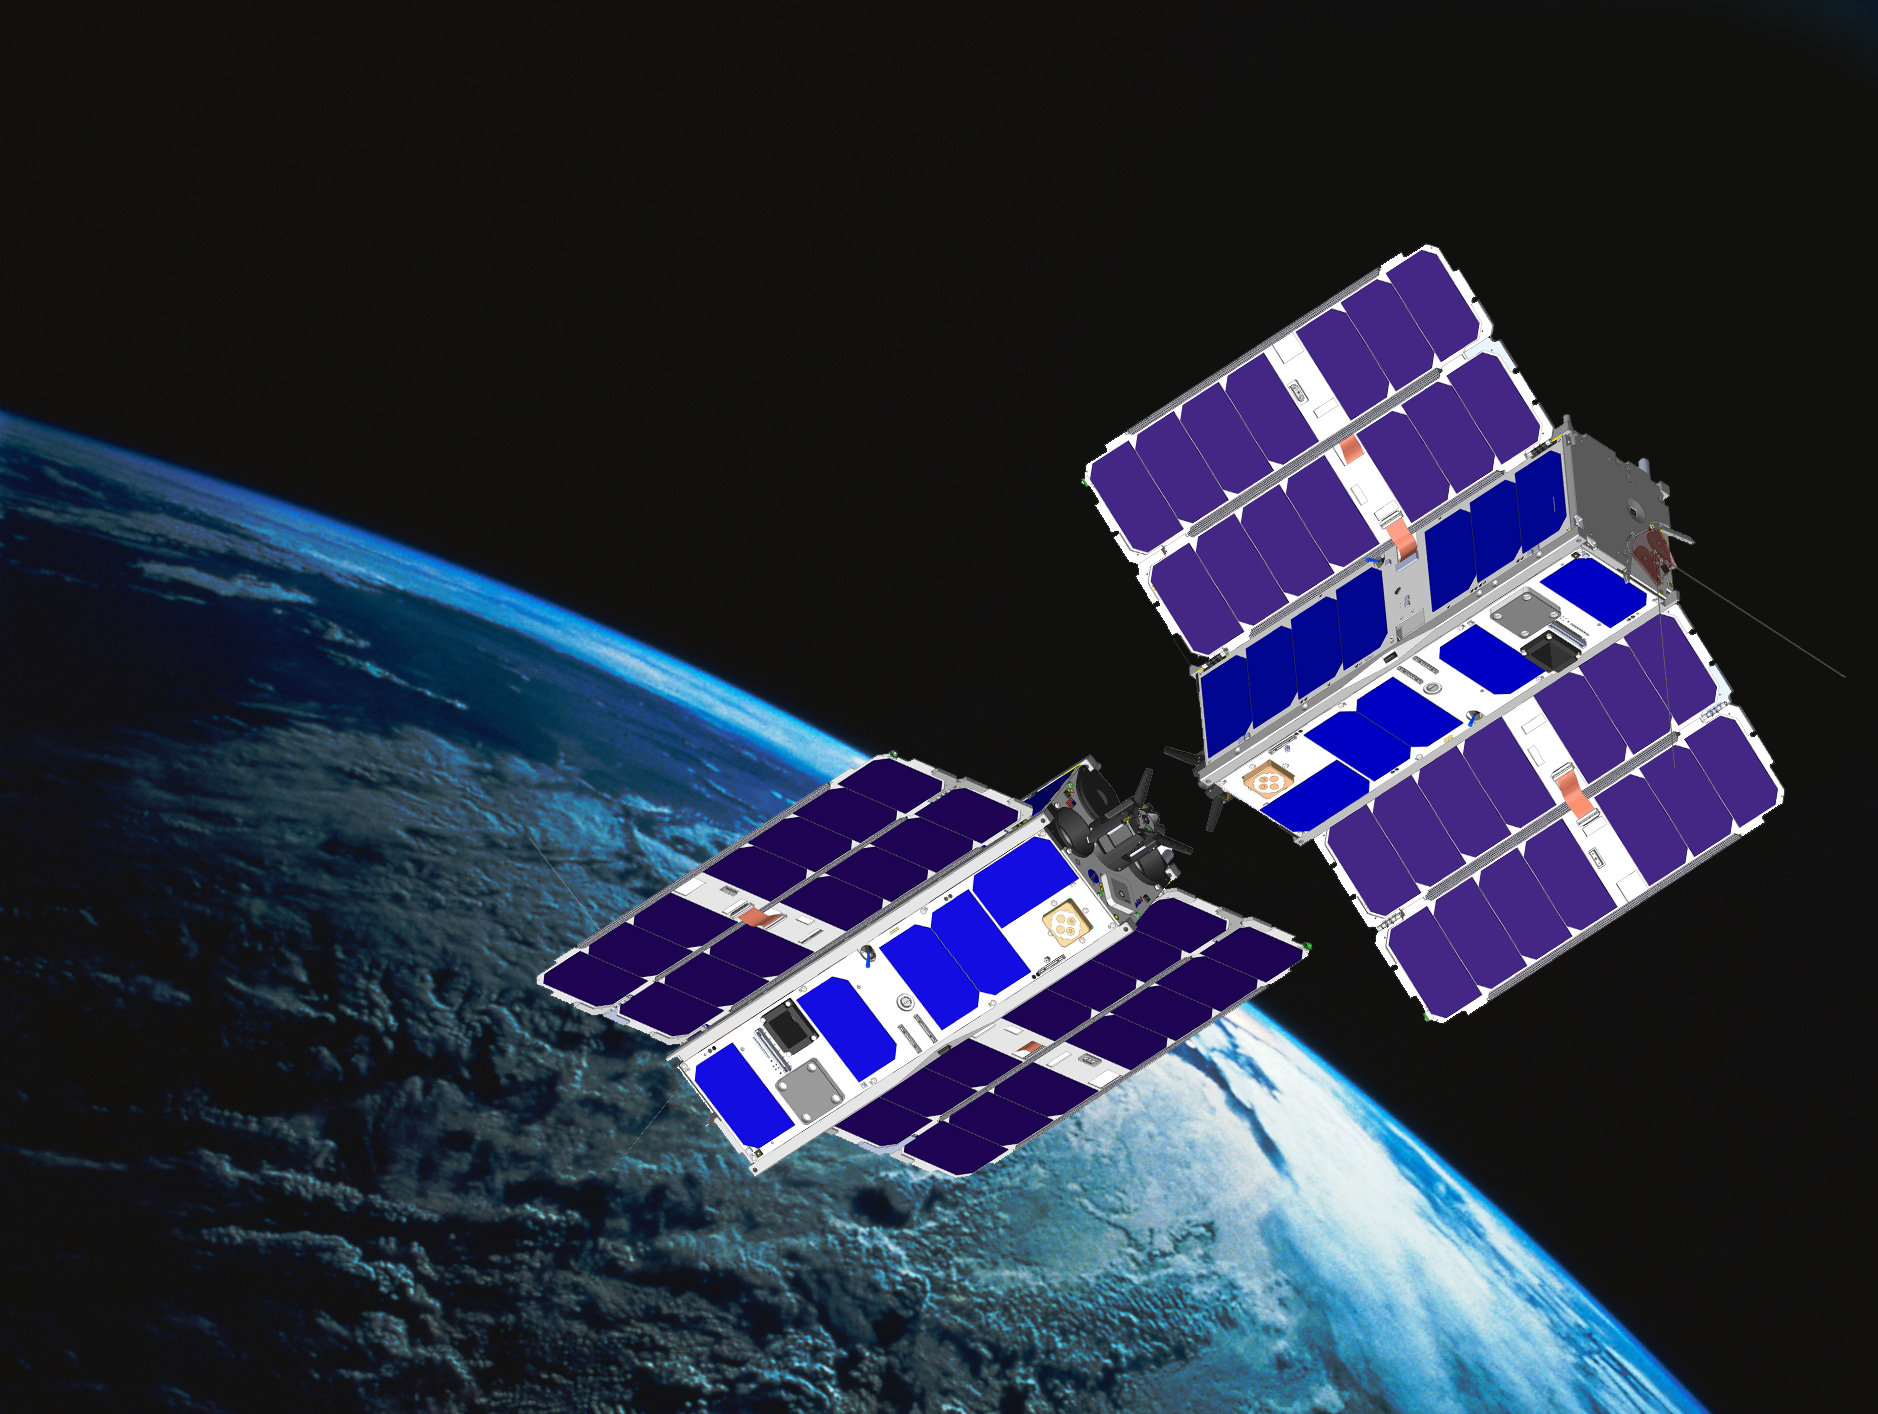 CubeSat Tables | Nanosatellite Database | Constellations